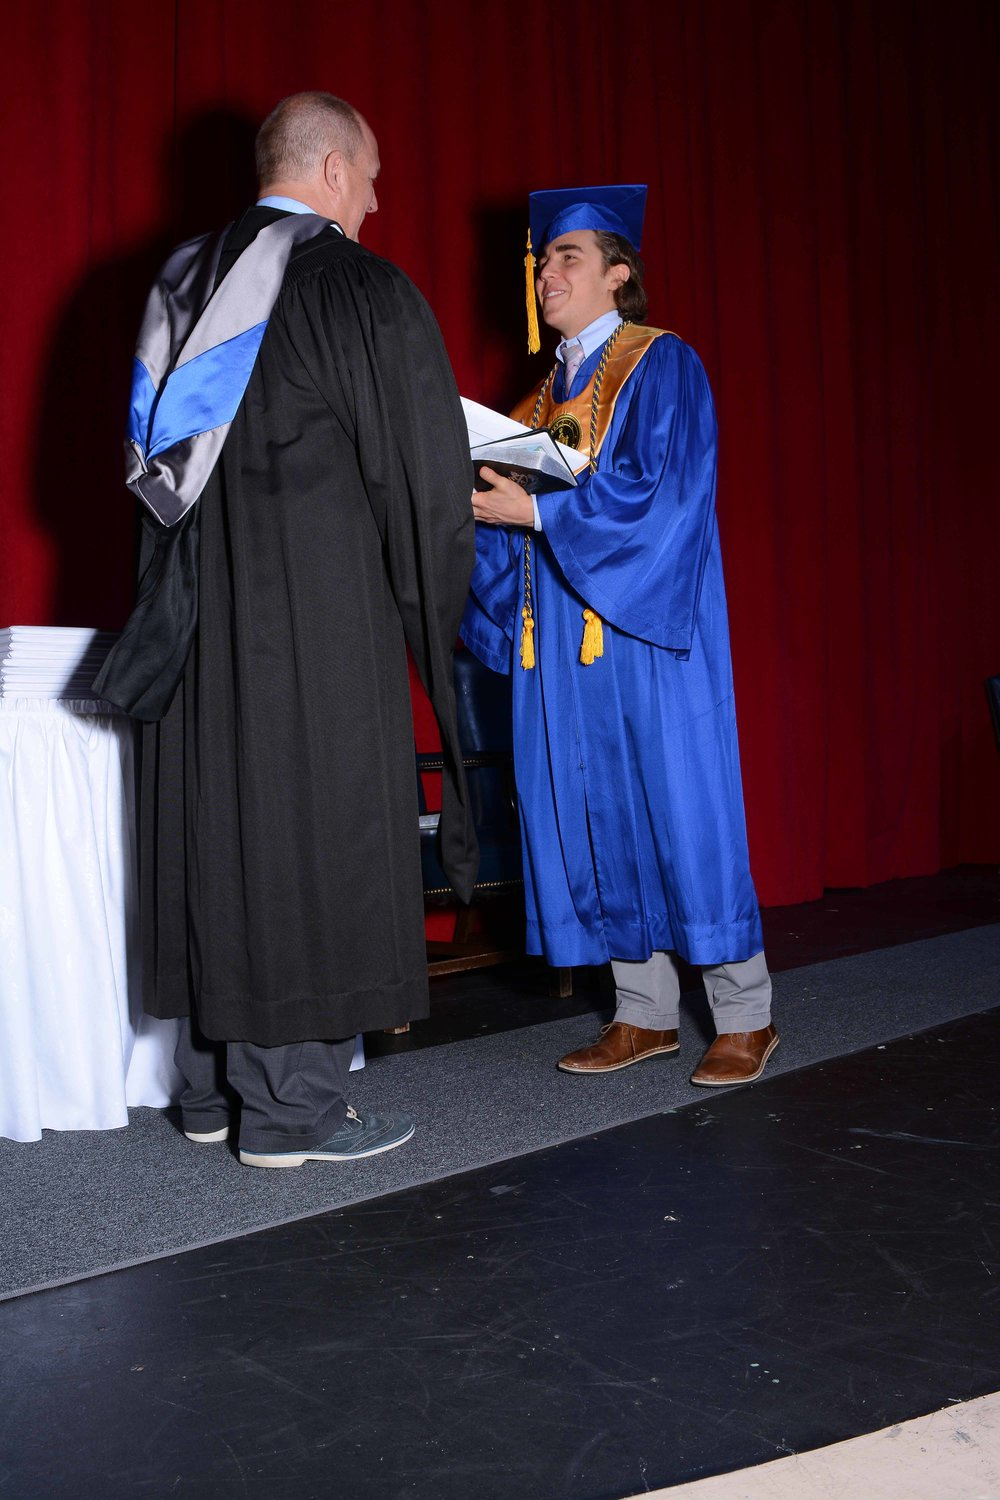 May14 Commencement62.jpg